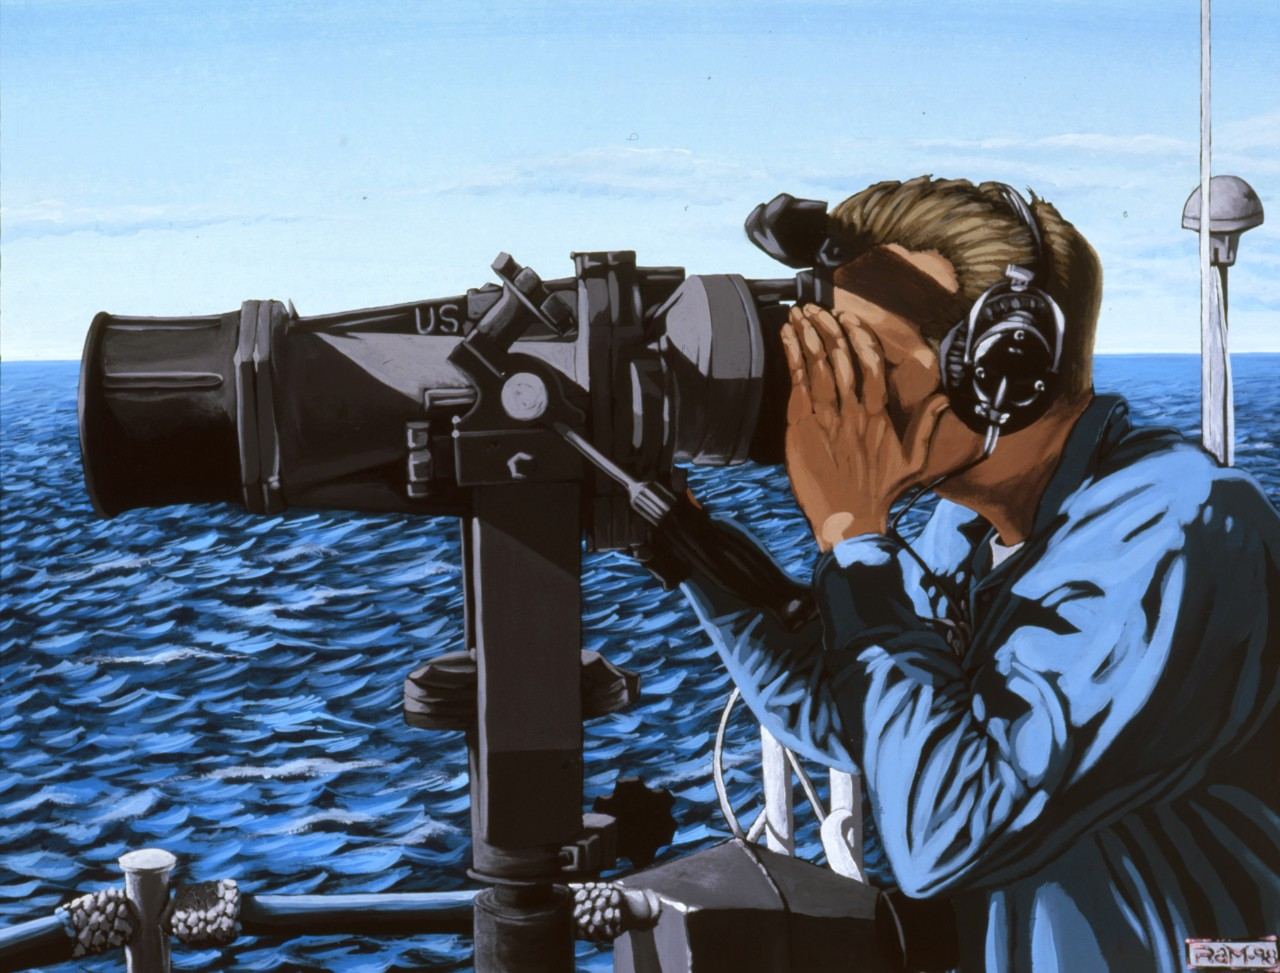 A sailors looks through binoculars on watch